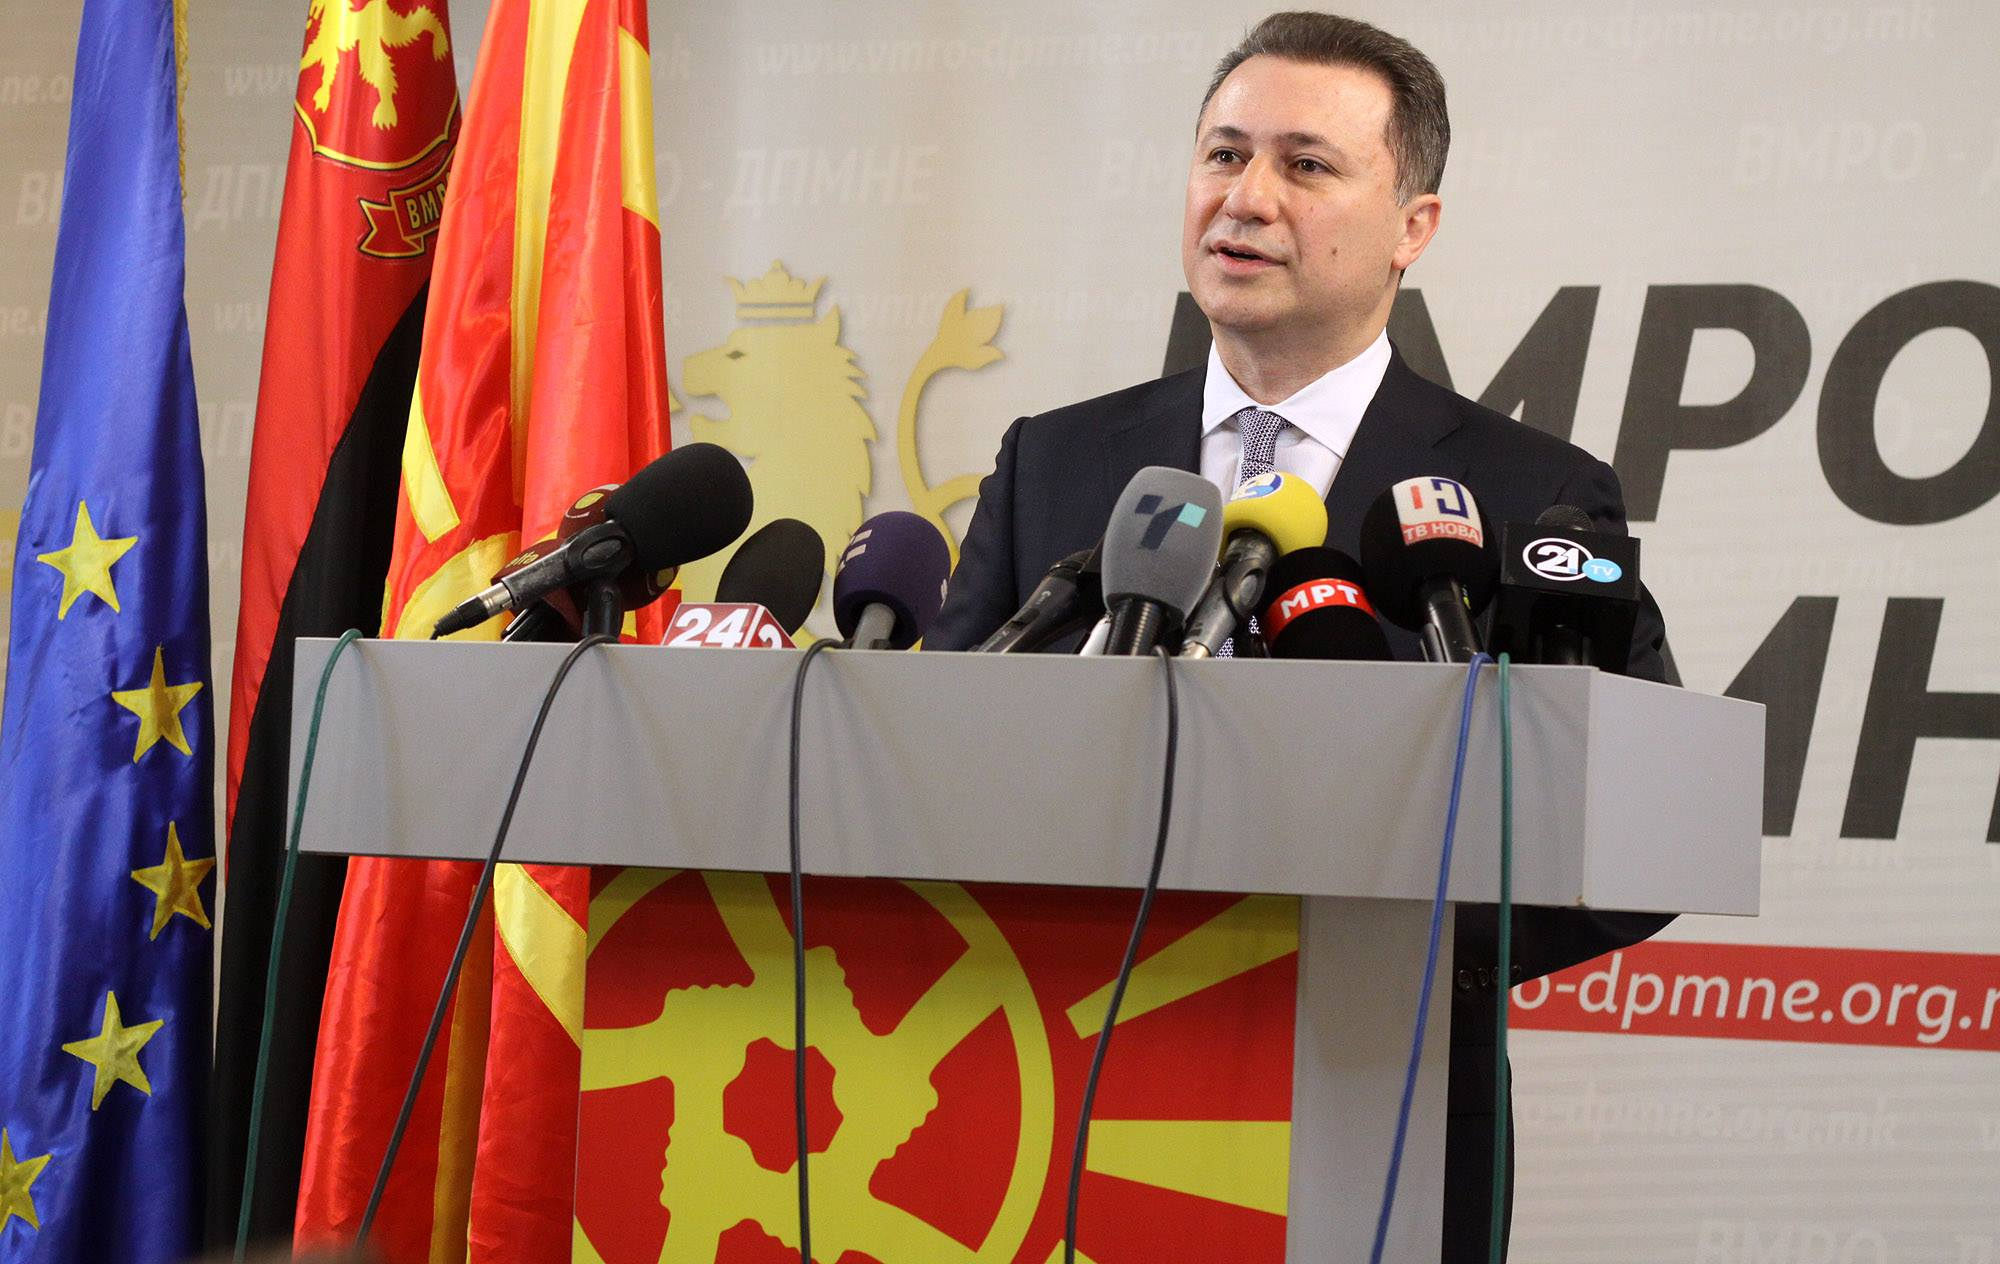 Macedonian prime minister Nikola Gruevski is facing protests on the streets of Skopje after the dismissal of an inquiry into a wiretapping scandal. (Facebook)